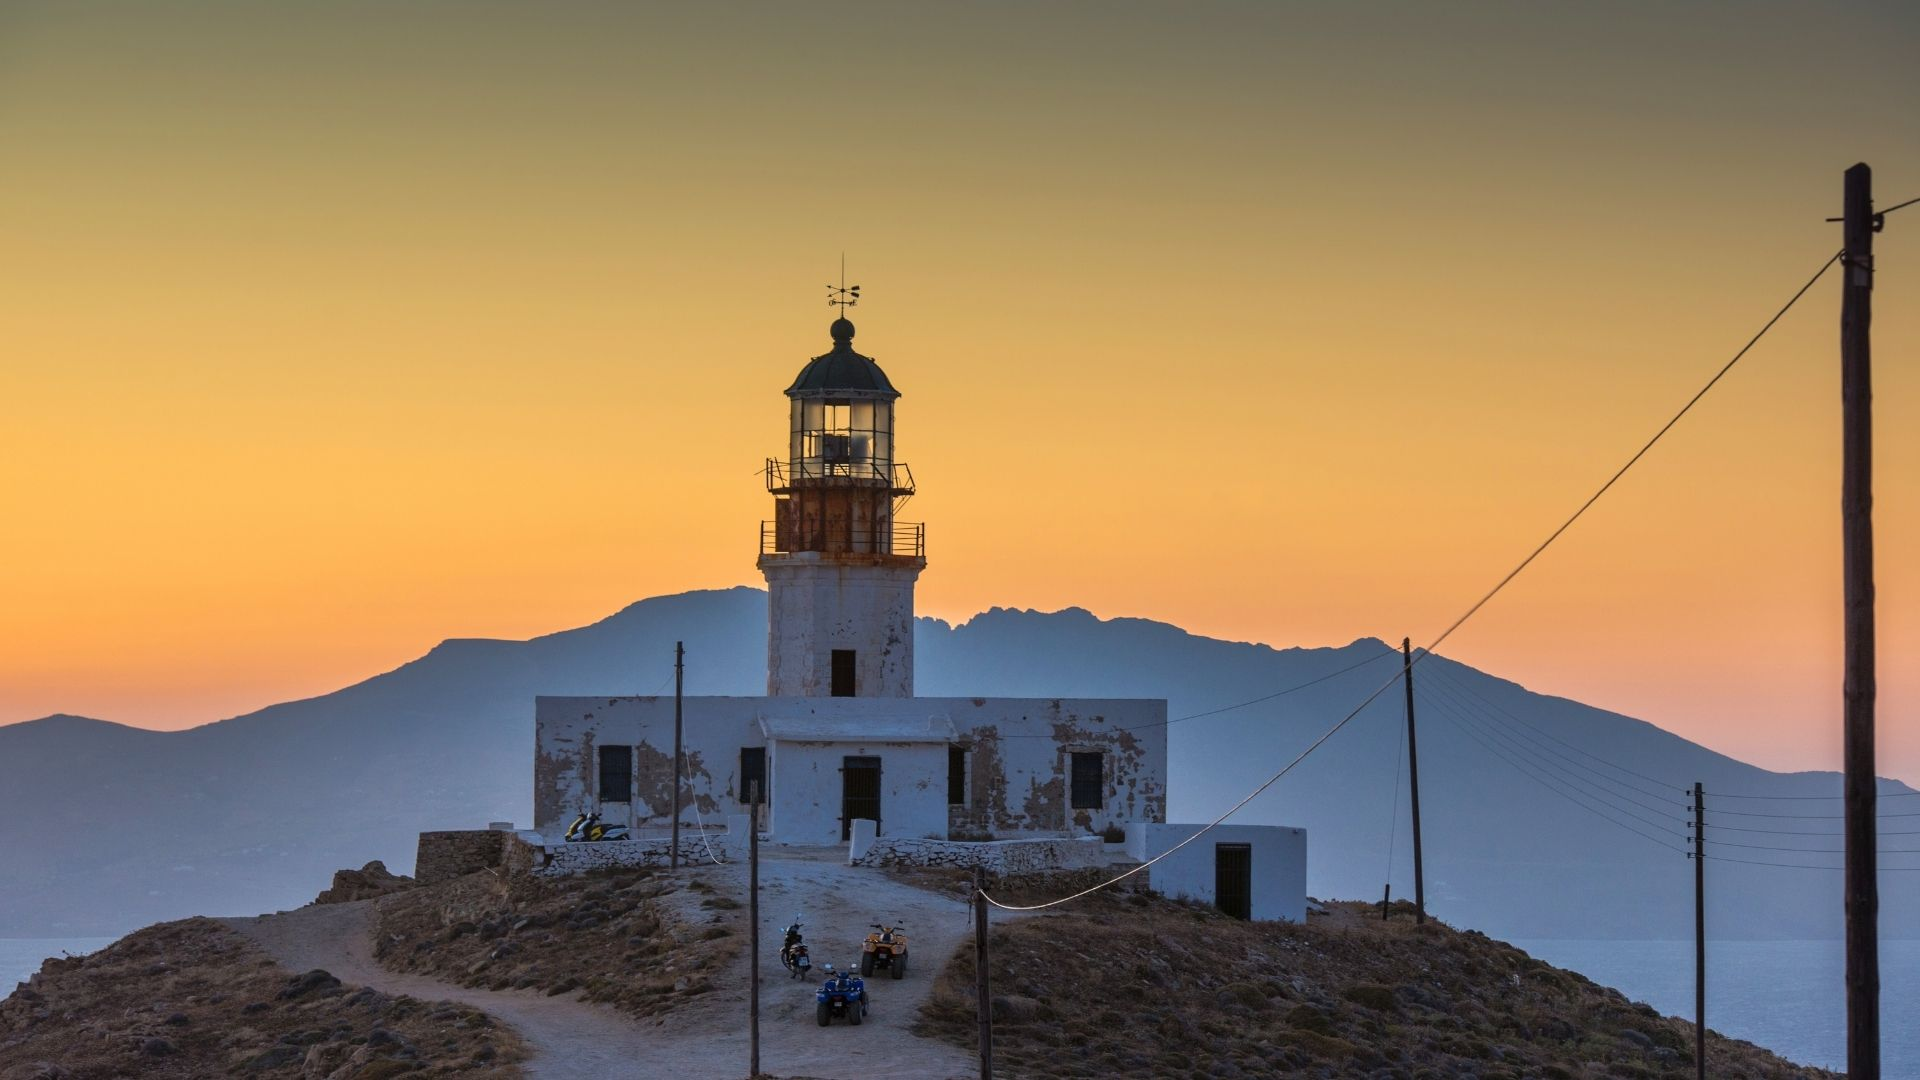 The lighthouse in Mykonos